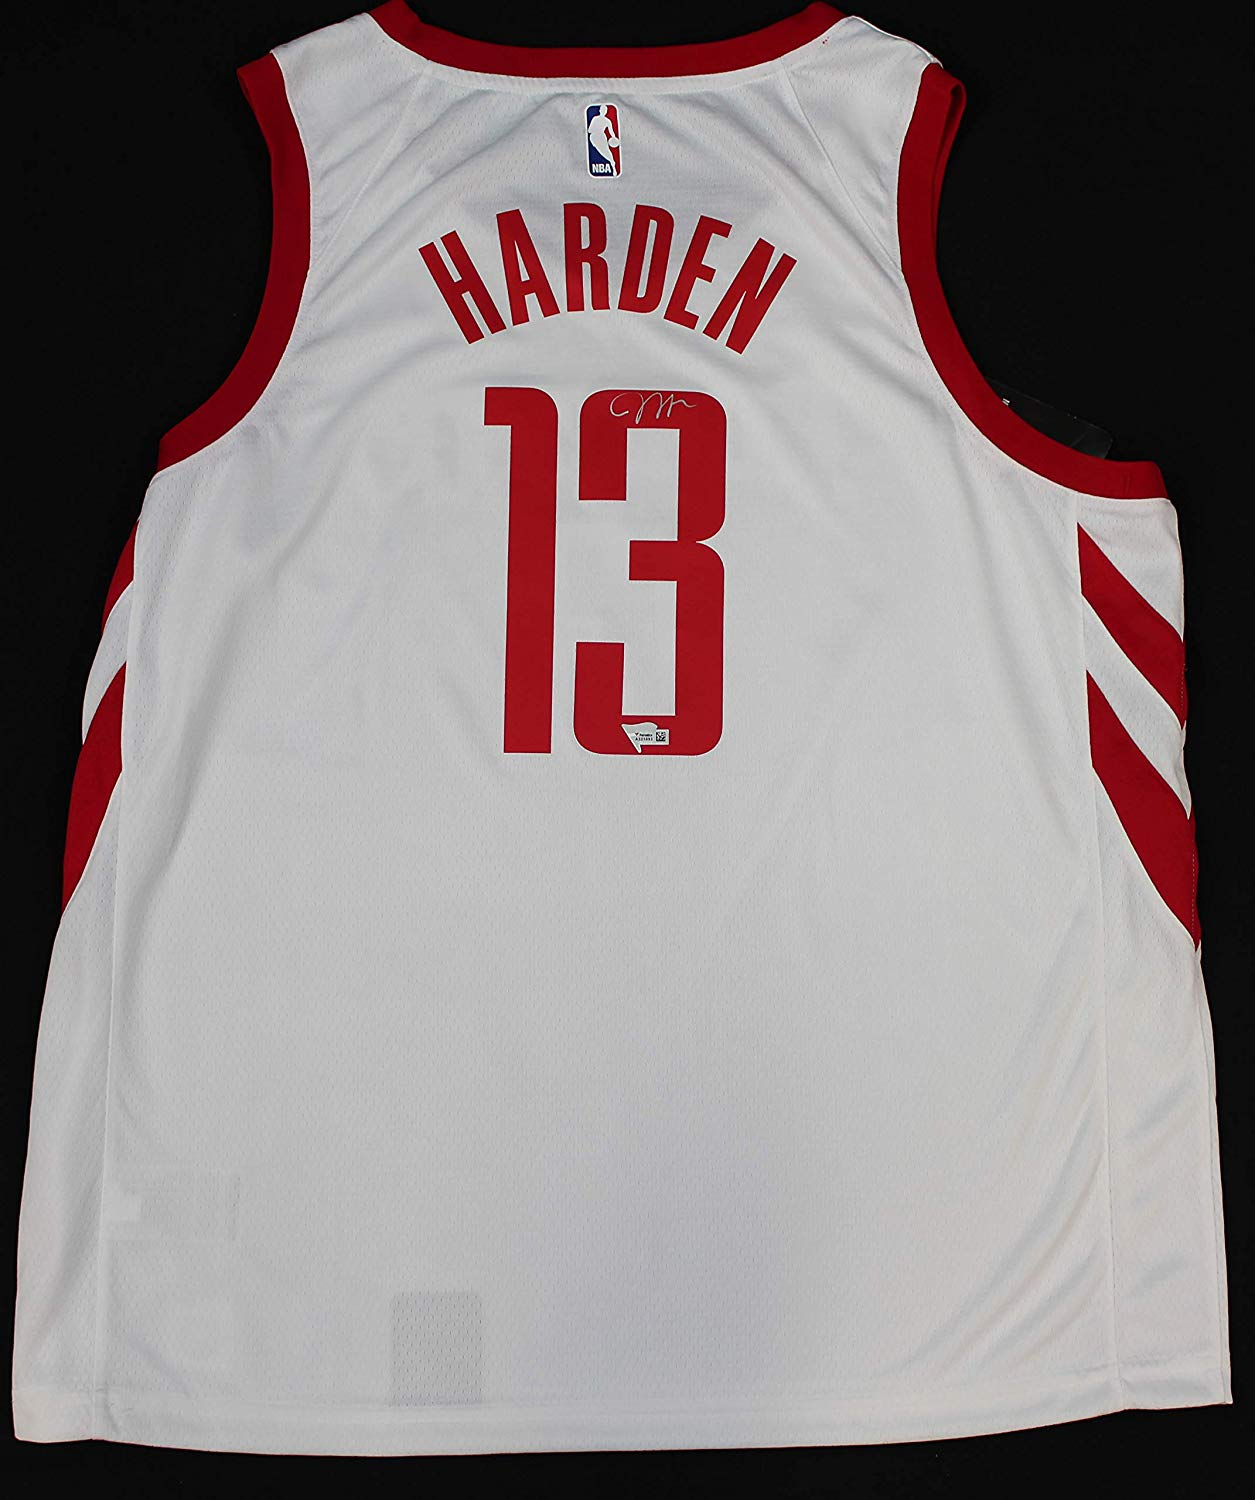 sale retailer b39e2 853c5 Cheap Harden Jersey, find Harden Jersey deals on line at ...